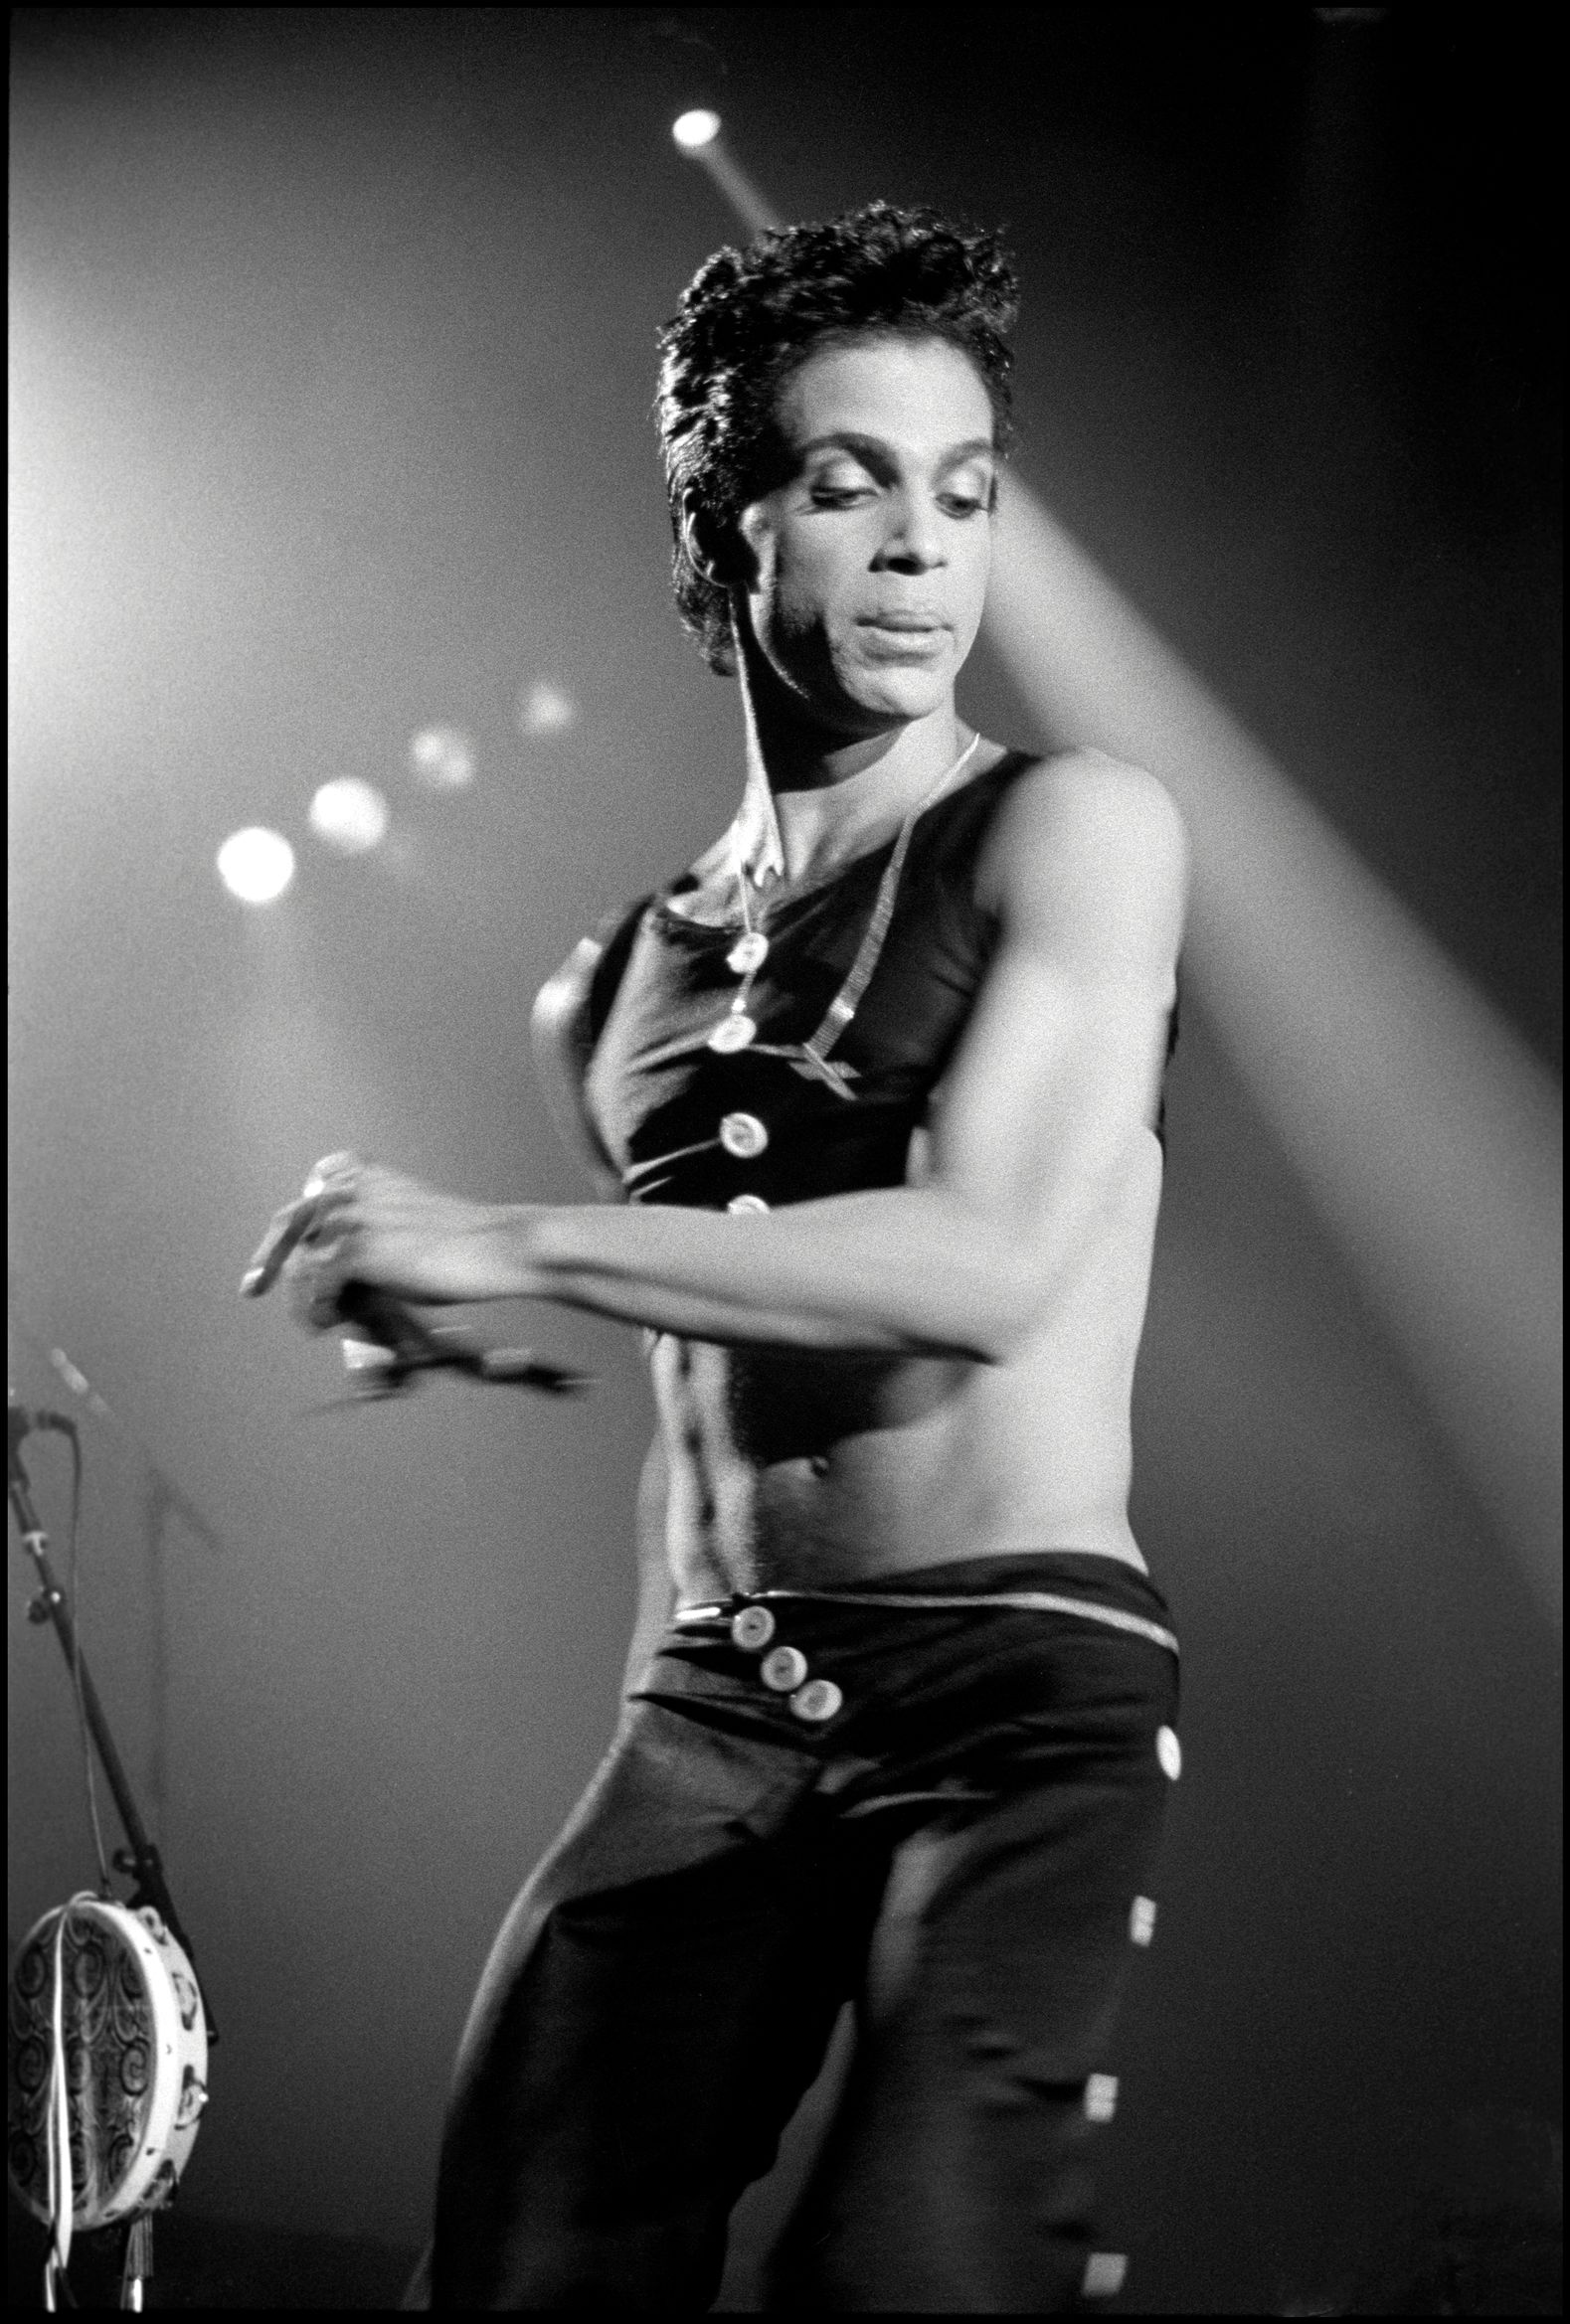 Prince, Wembley Arena, London, UK, 14th August 1986